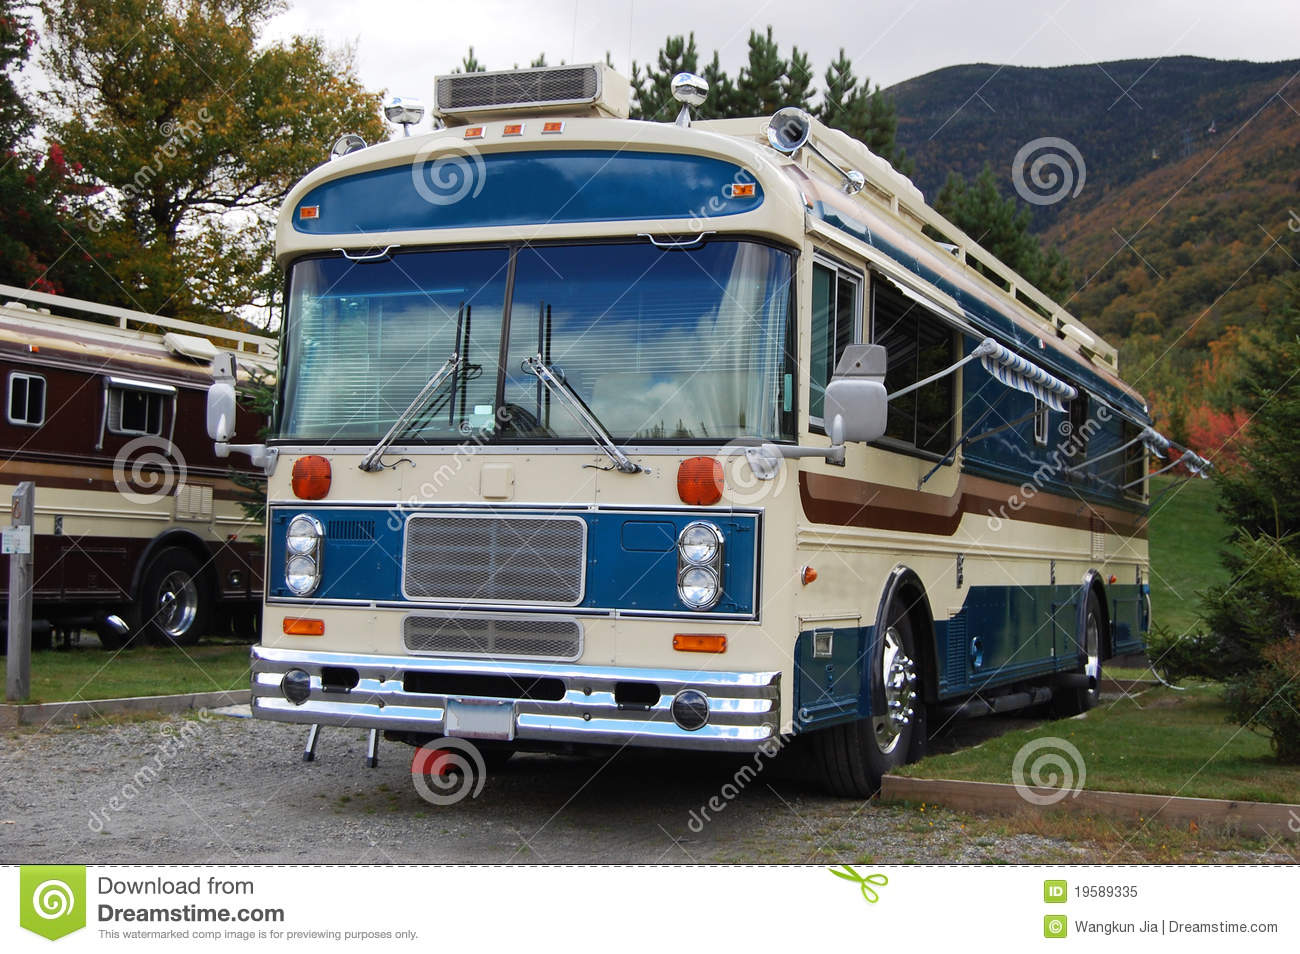 Antique Recreational Bus, New Hampshire, USA